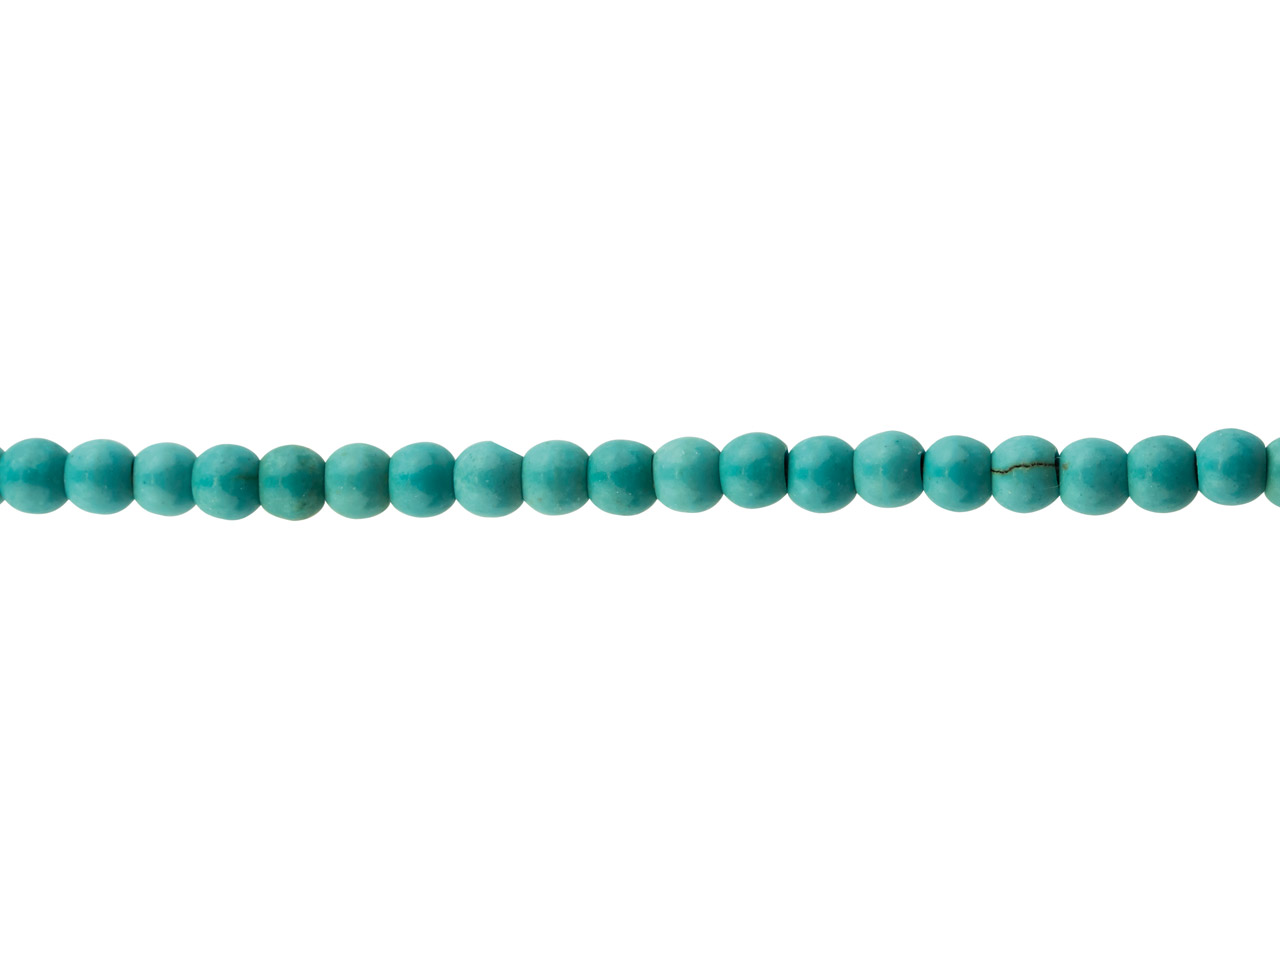 Synthetic Turquoise Semi Precious   Round Beads, 4mm, 15.5